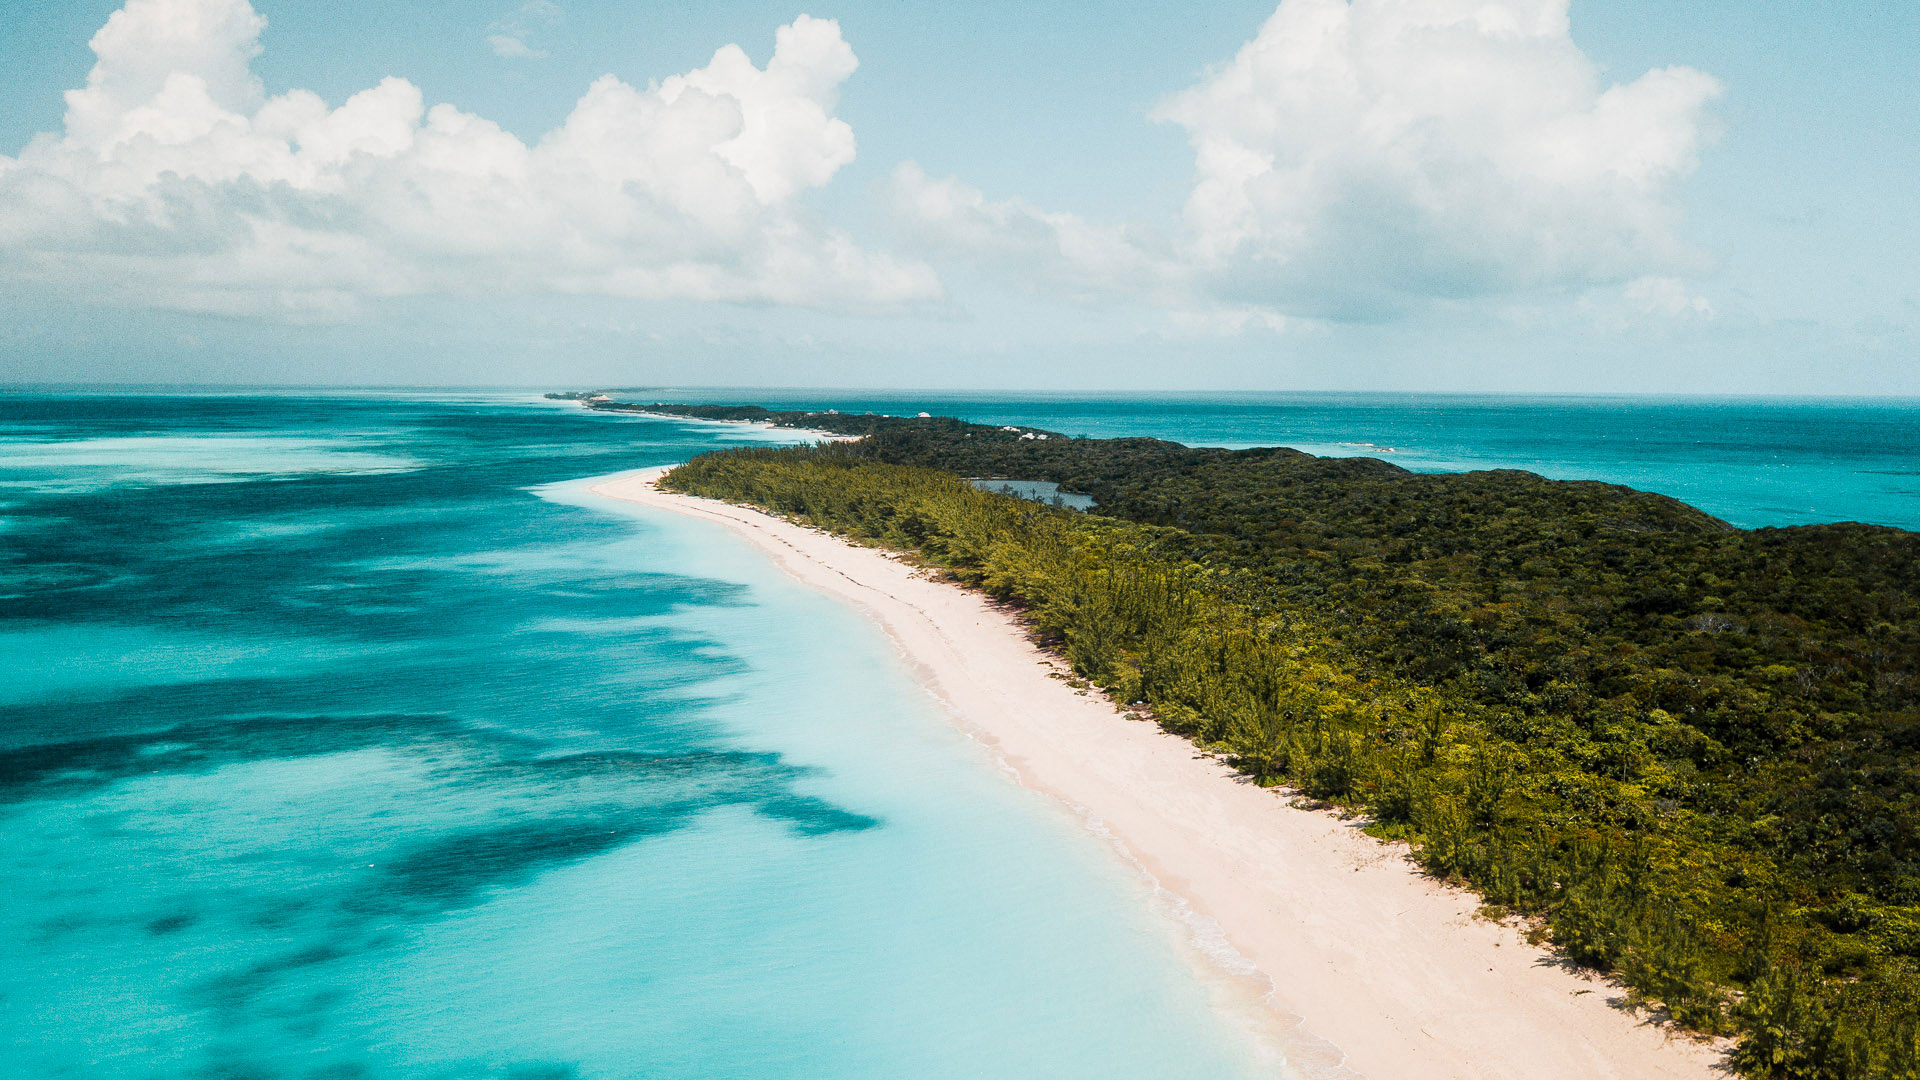 Florida And Bahamas From Miami Navigator Of The Seas Let S Go Tours